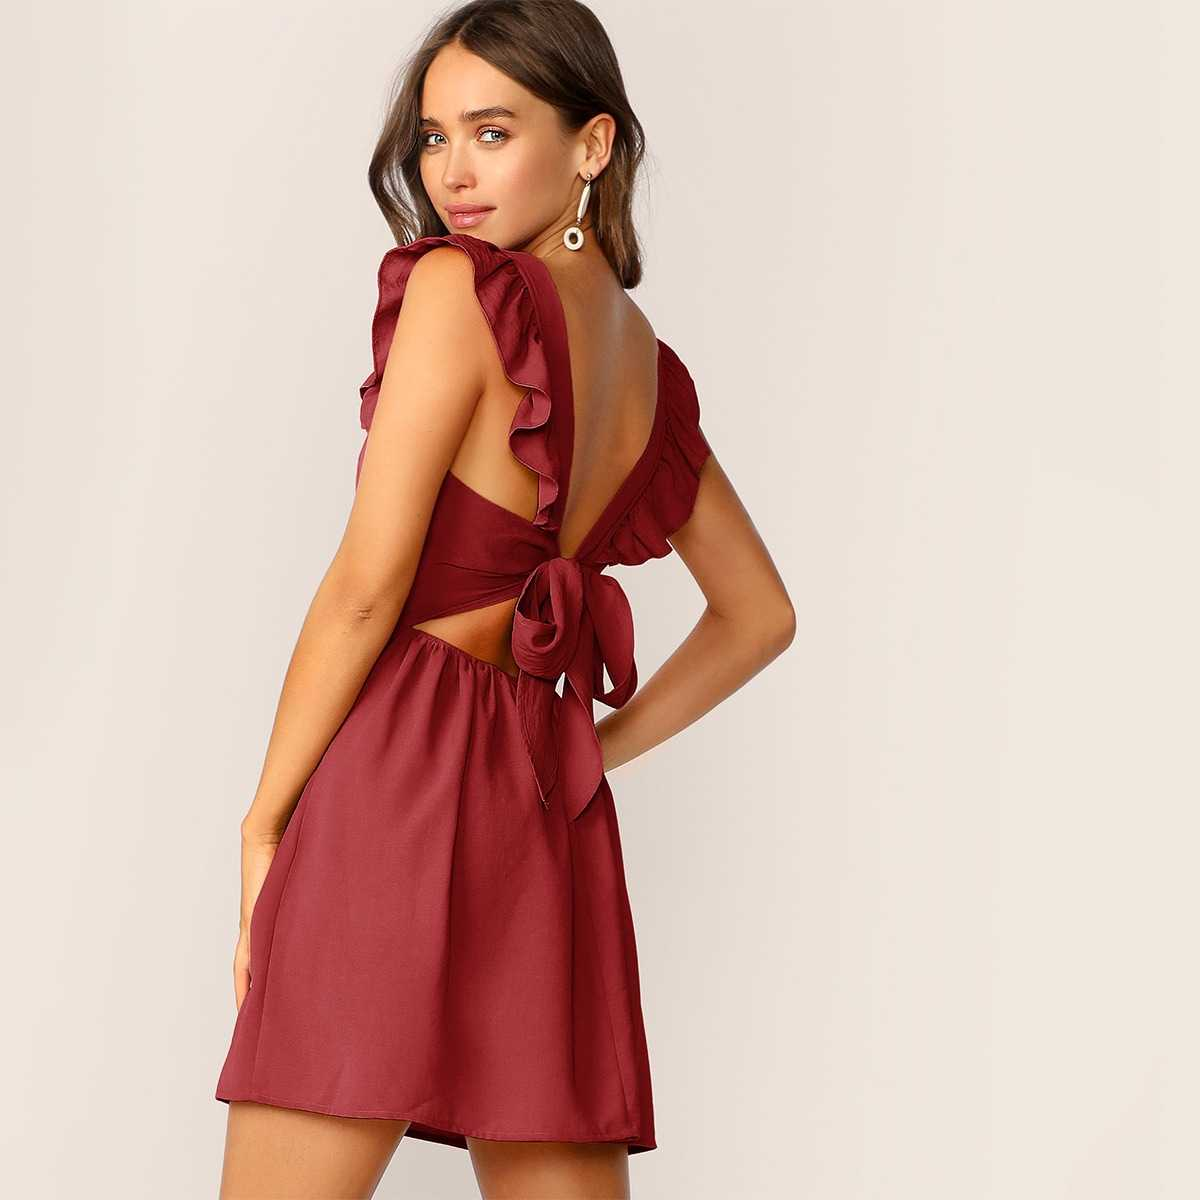 Solid Ruffle Trim Tie Back Fit & Flare Dress in Burgundy by ROMWE on GOOFASH